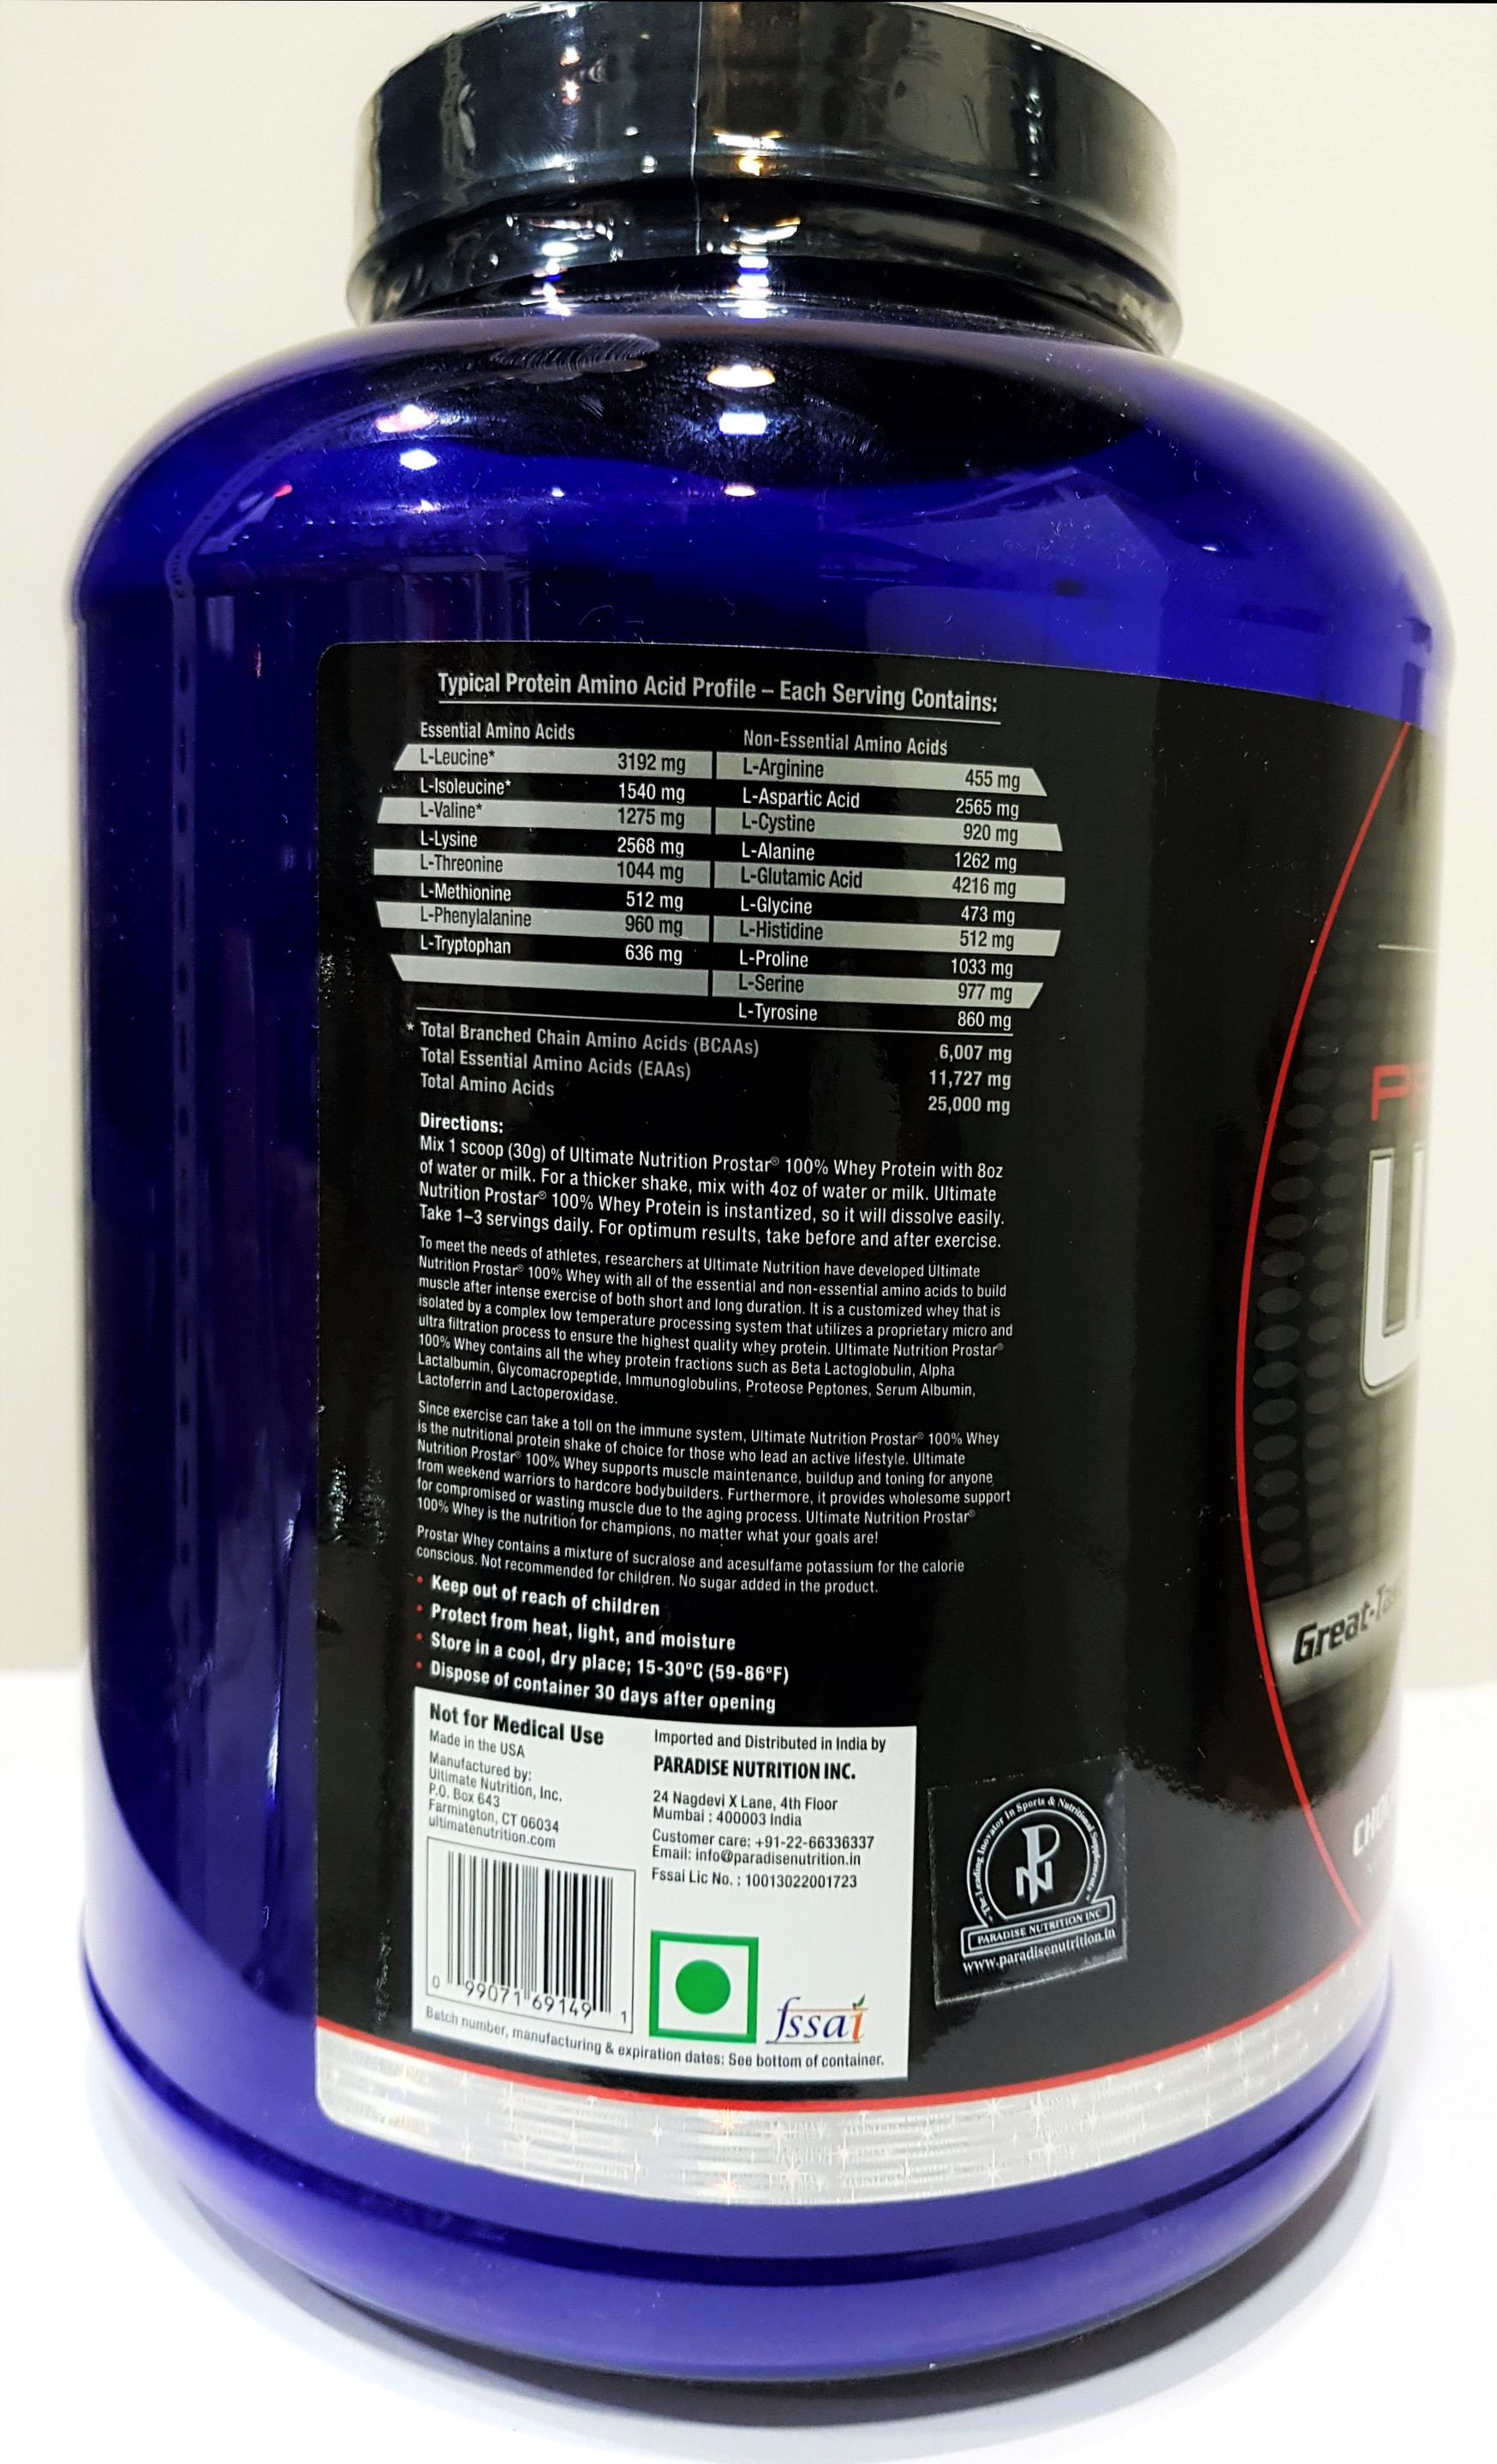 ULTIMATE NUTRITION PROSTAR 100% WHEY PROTEIN (Rs  2499 - Rs  4999)